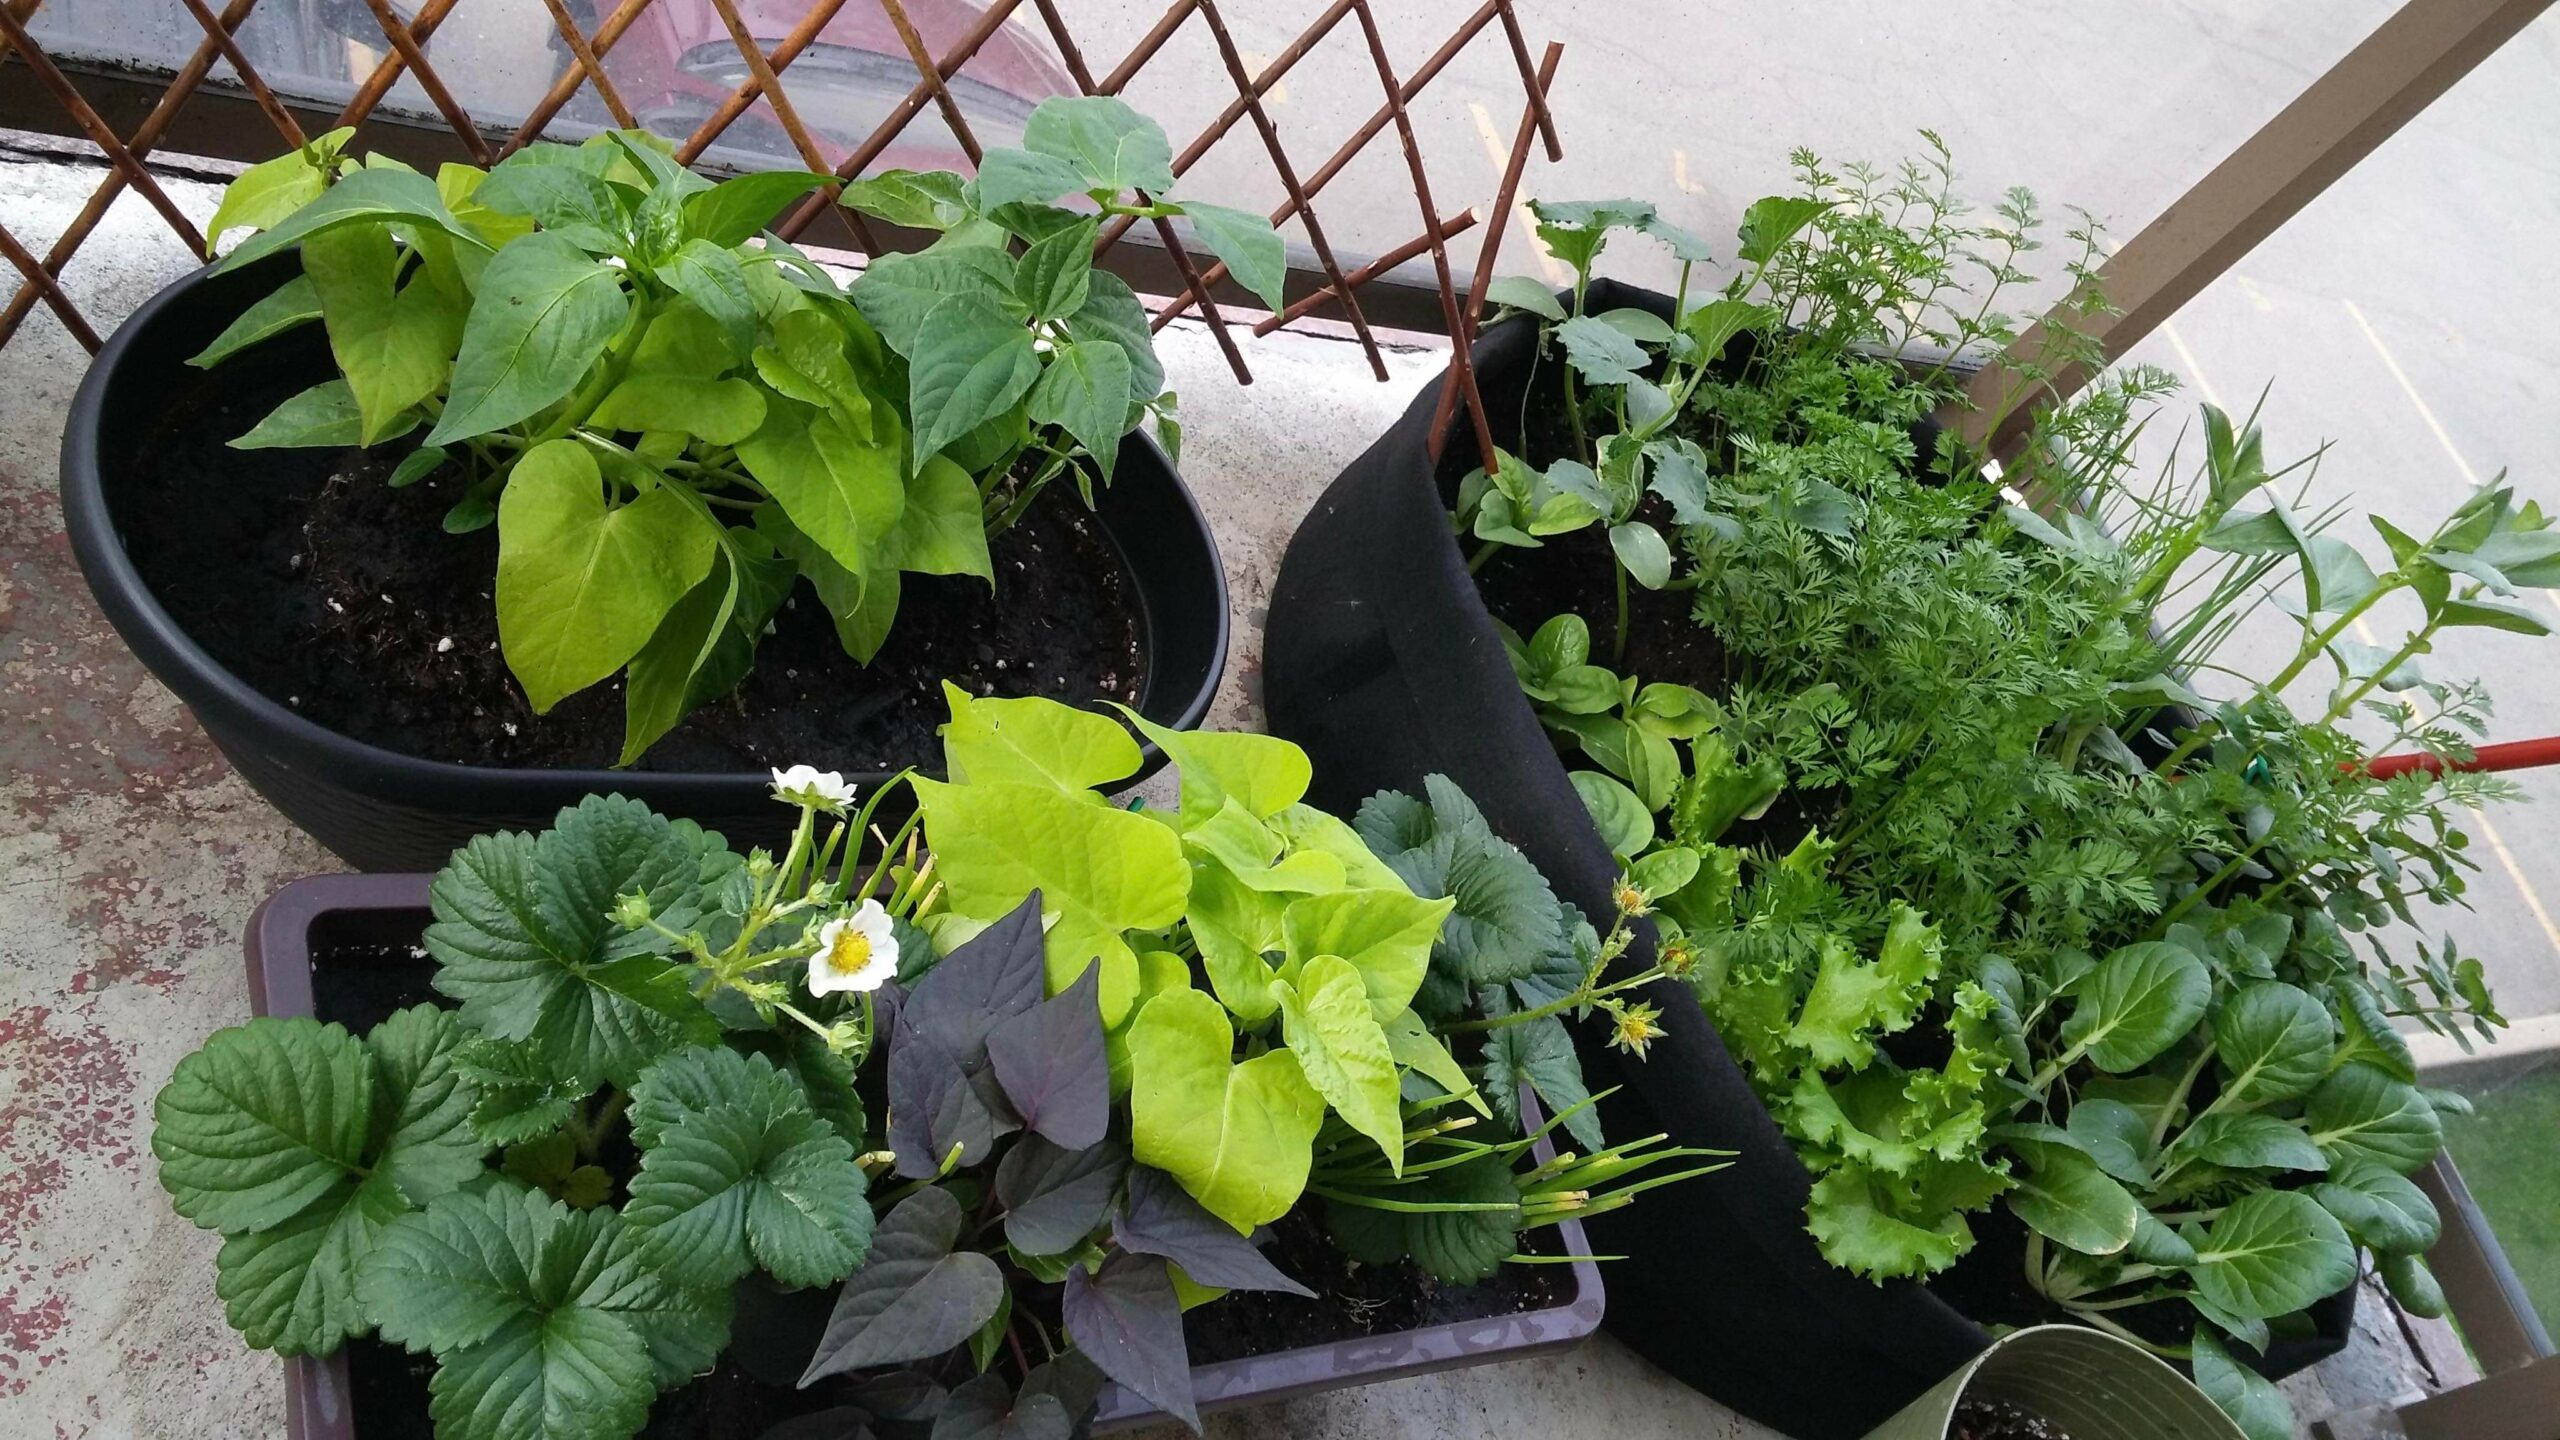 edible plants growing in containers